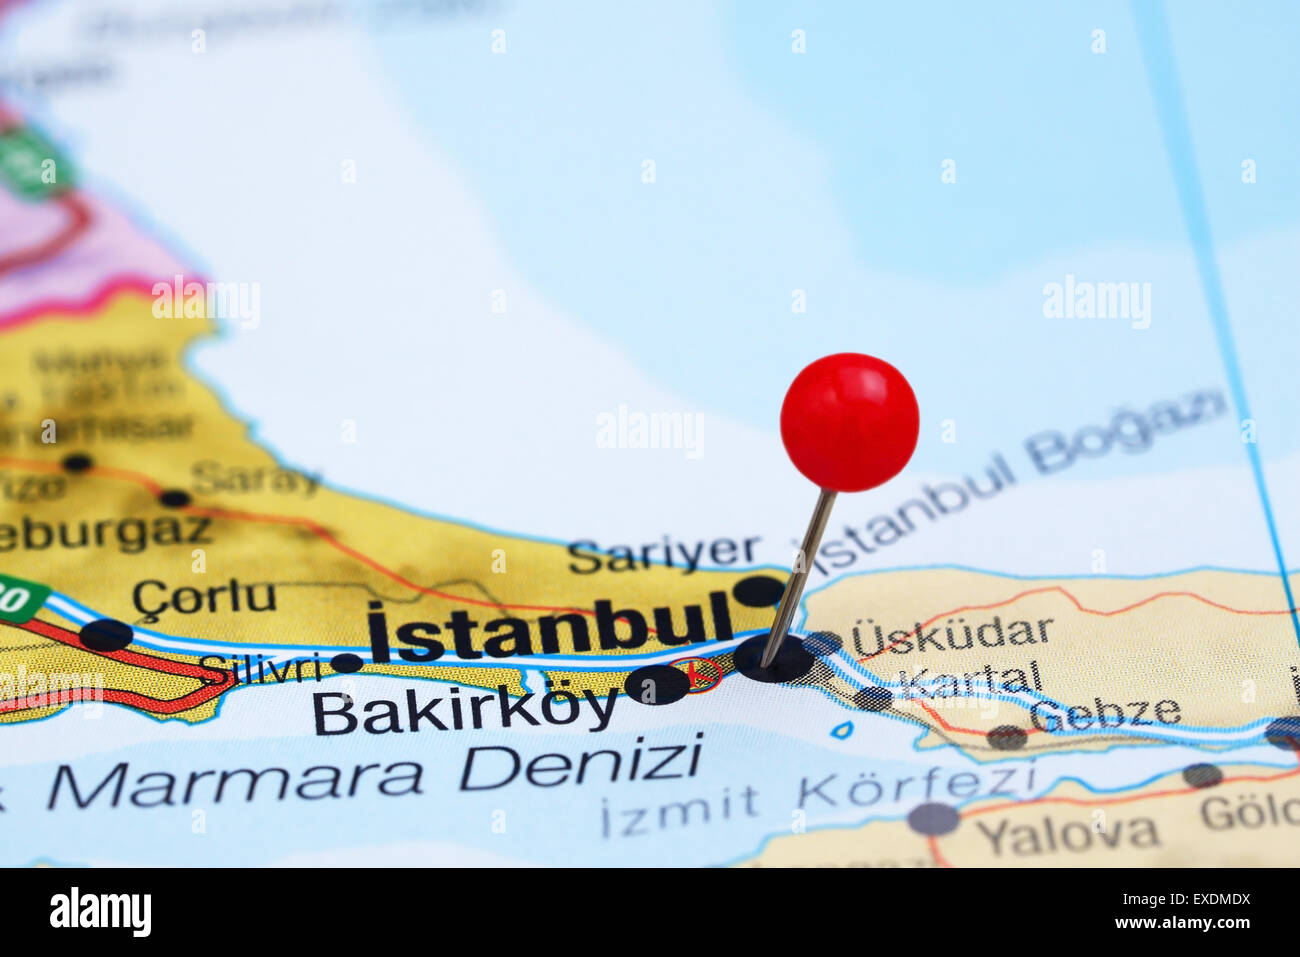 Istanbul pinned on a map of europe Stock Photo Royalty Free Image